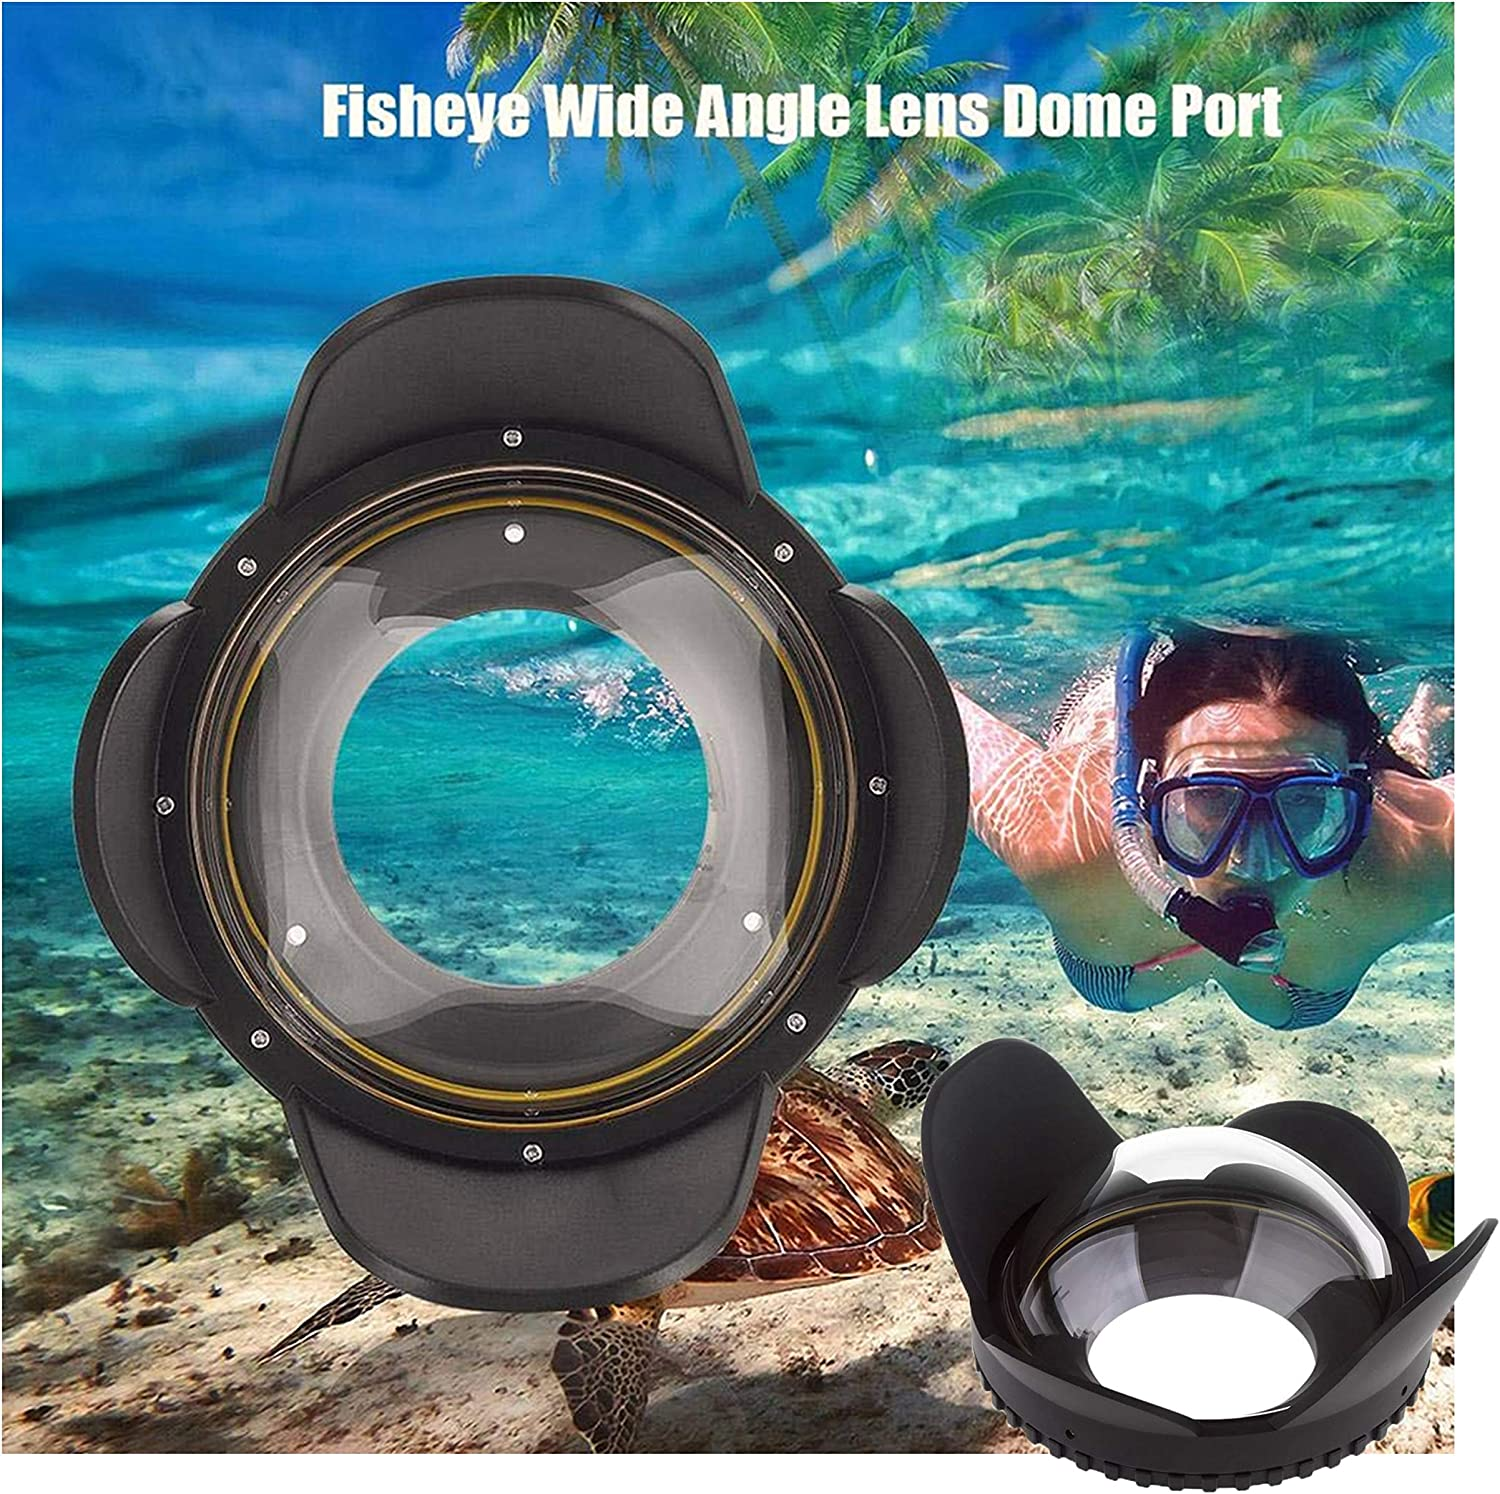 Waterproof Diving Dome Port with 60m//197ft Pressure Resistant for Underwater Camera Housing Venidice 67mm Fisheye Wide-Angle Lens